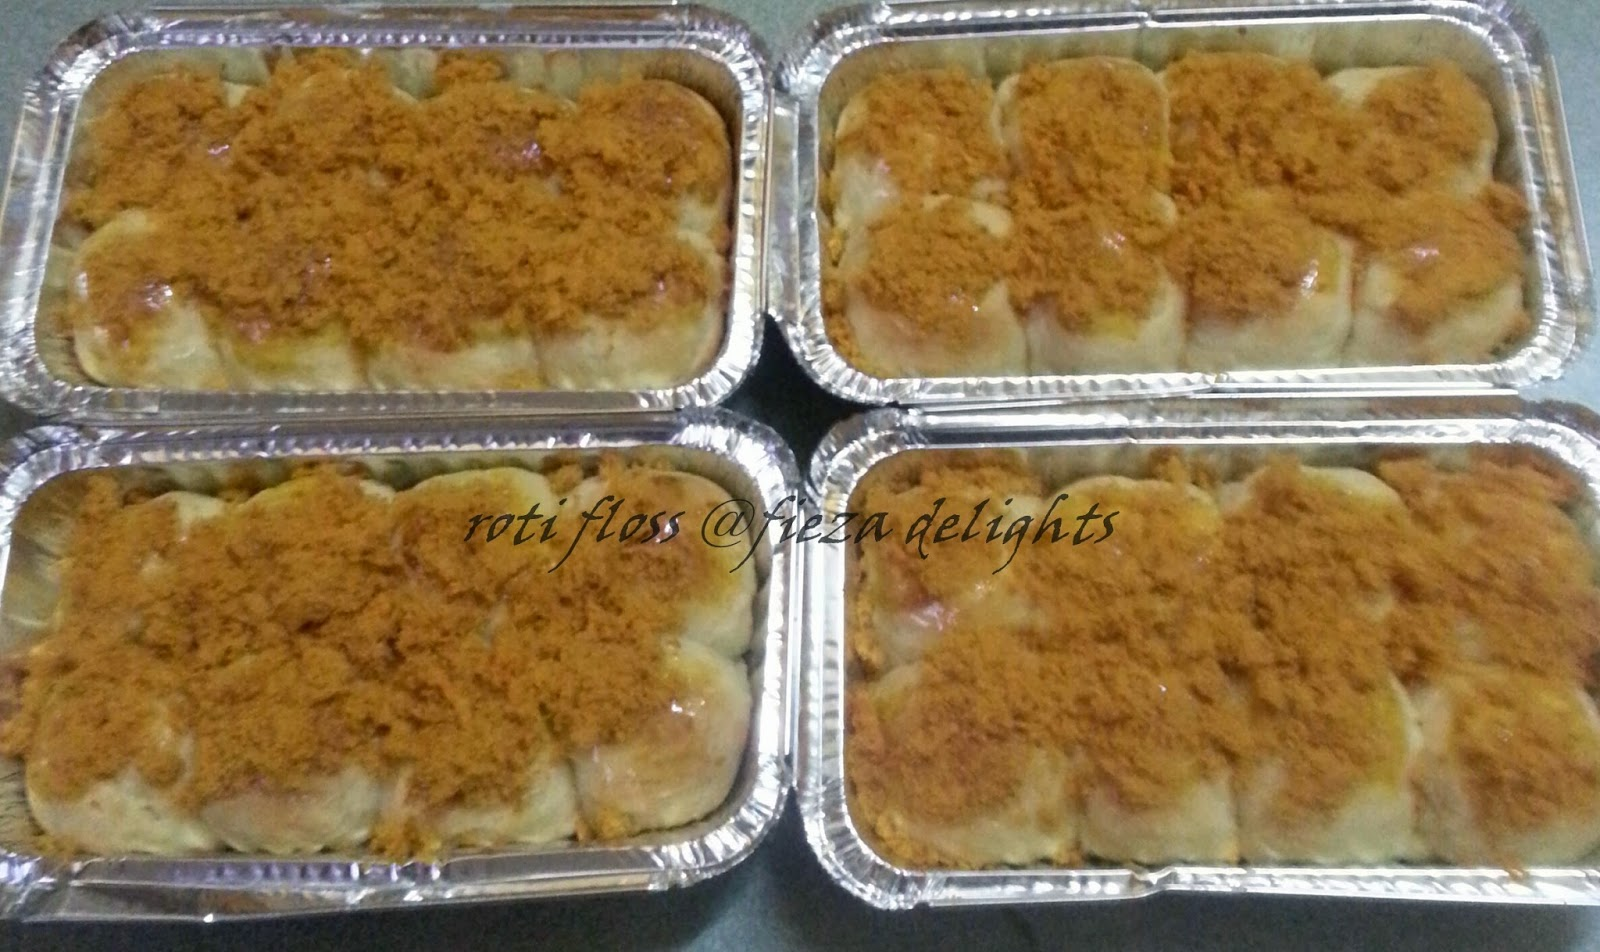 MINI ROTI CHICKEN FLOSS